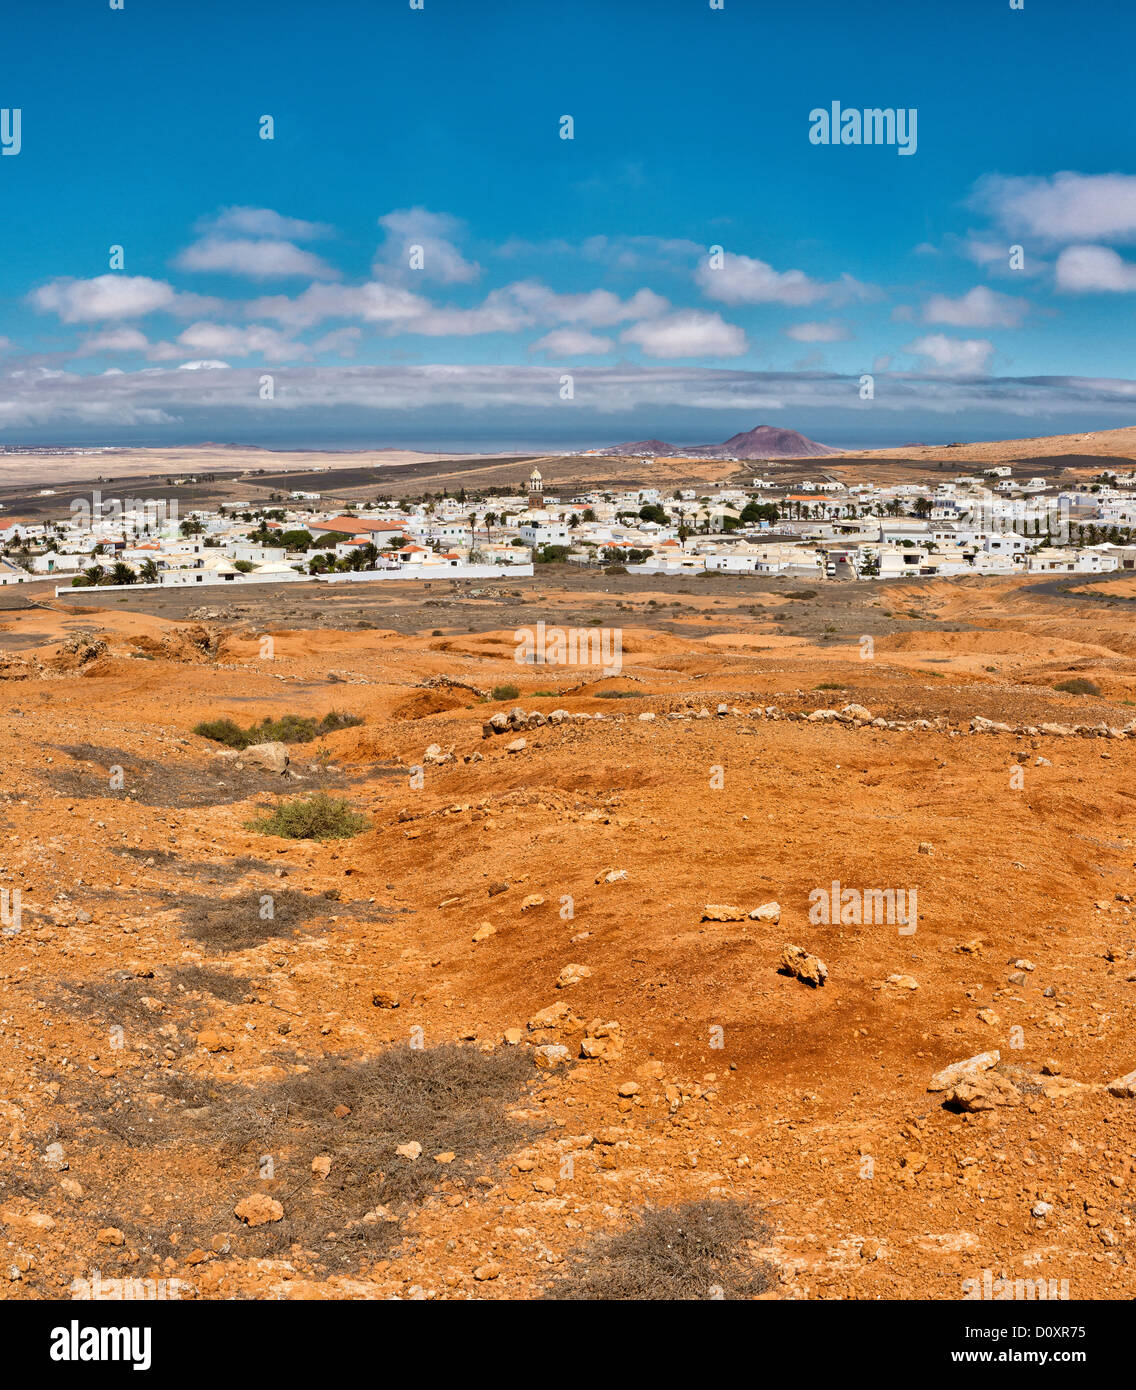 Spain, Lanzarote, Teguise, white village, red, soil, city, village, summer, mountains, hills, Canary Islands, - Stock Image